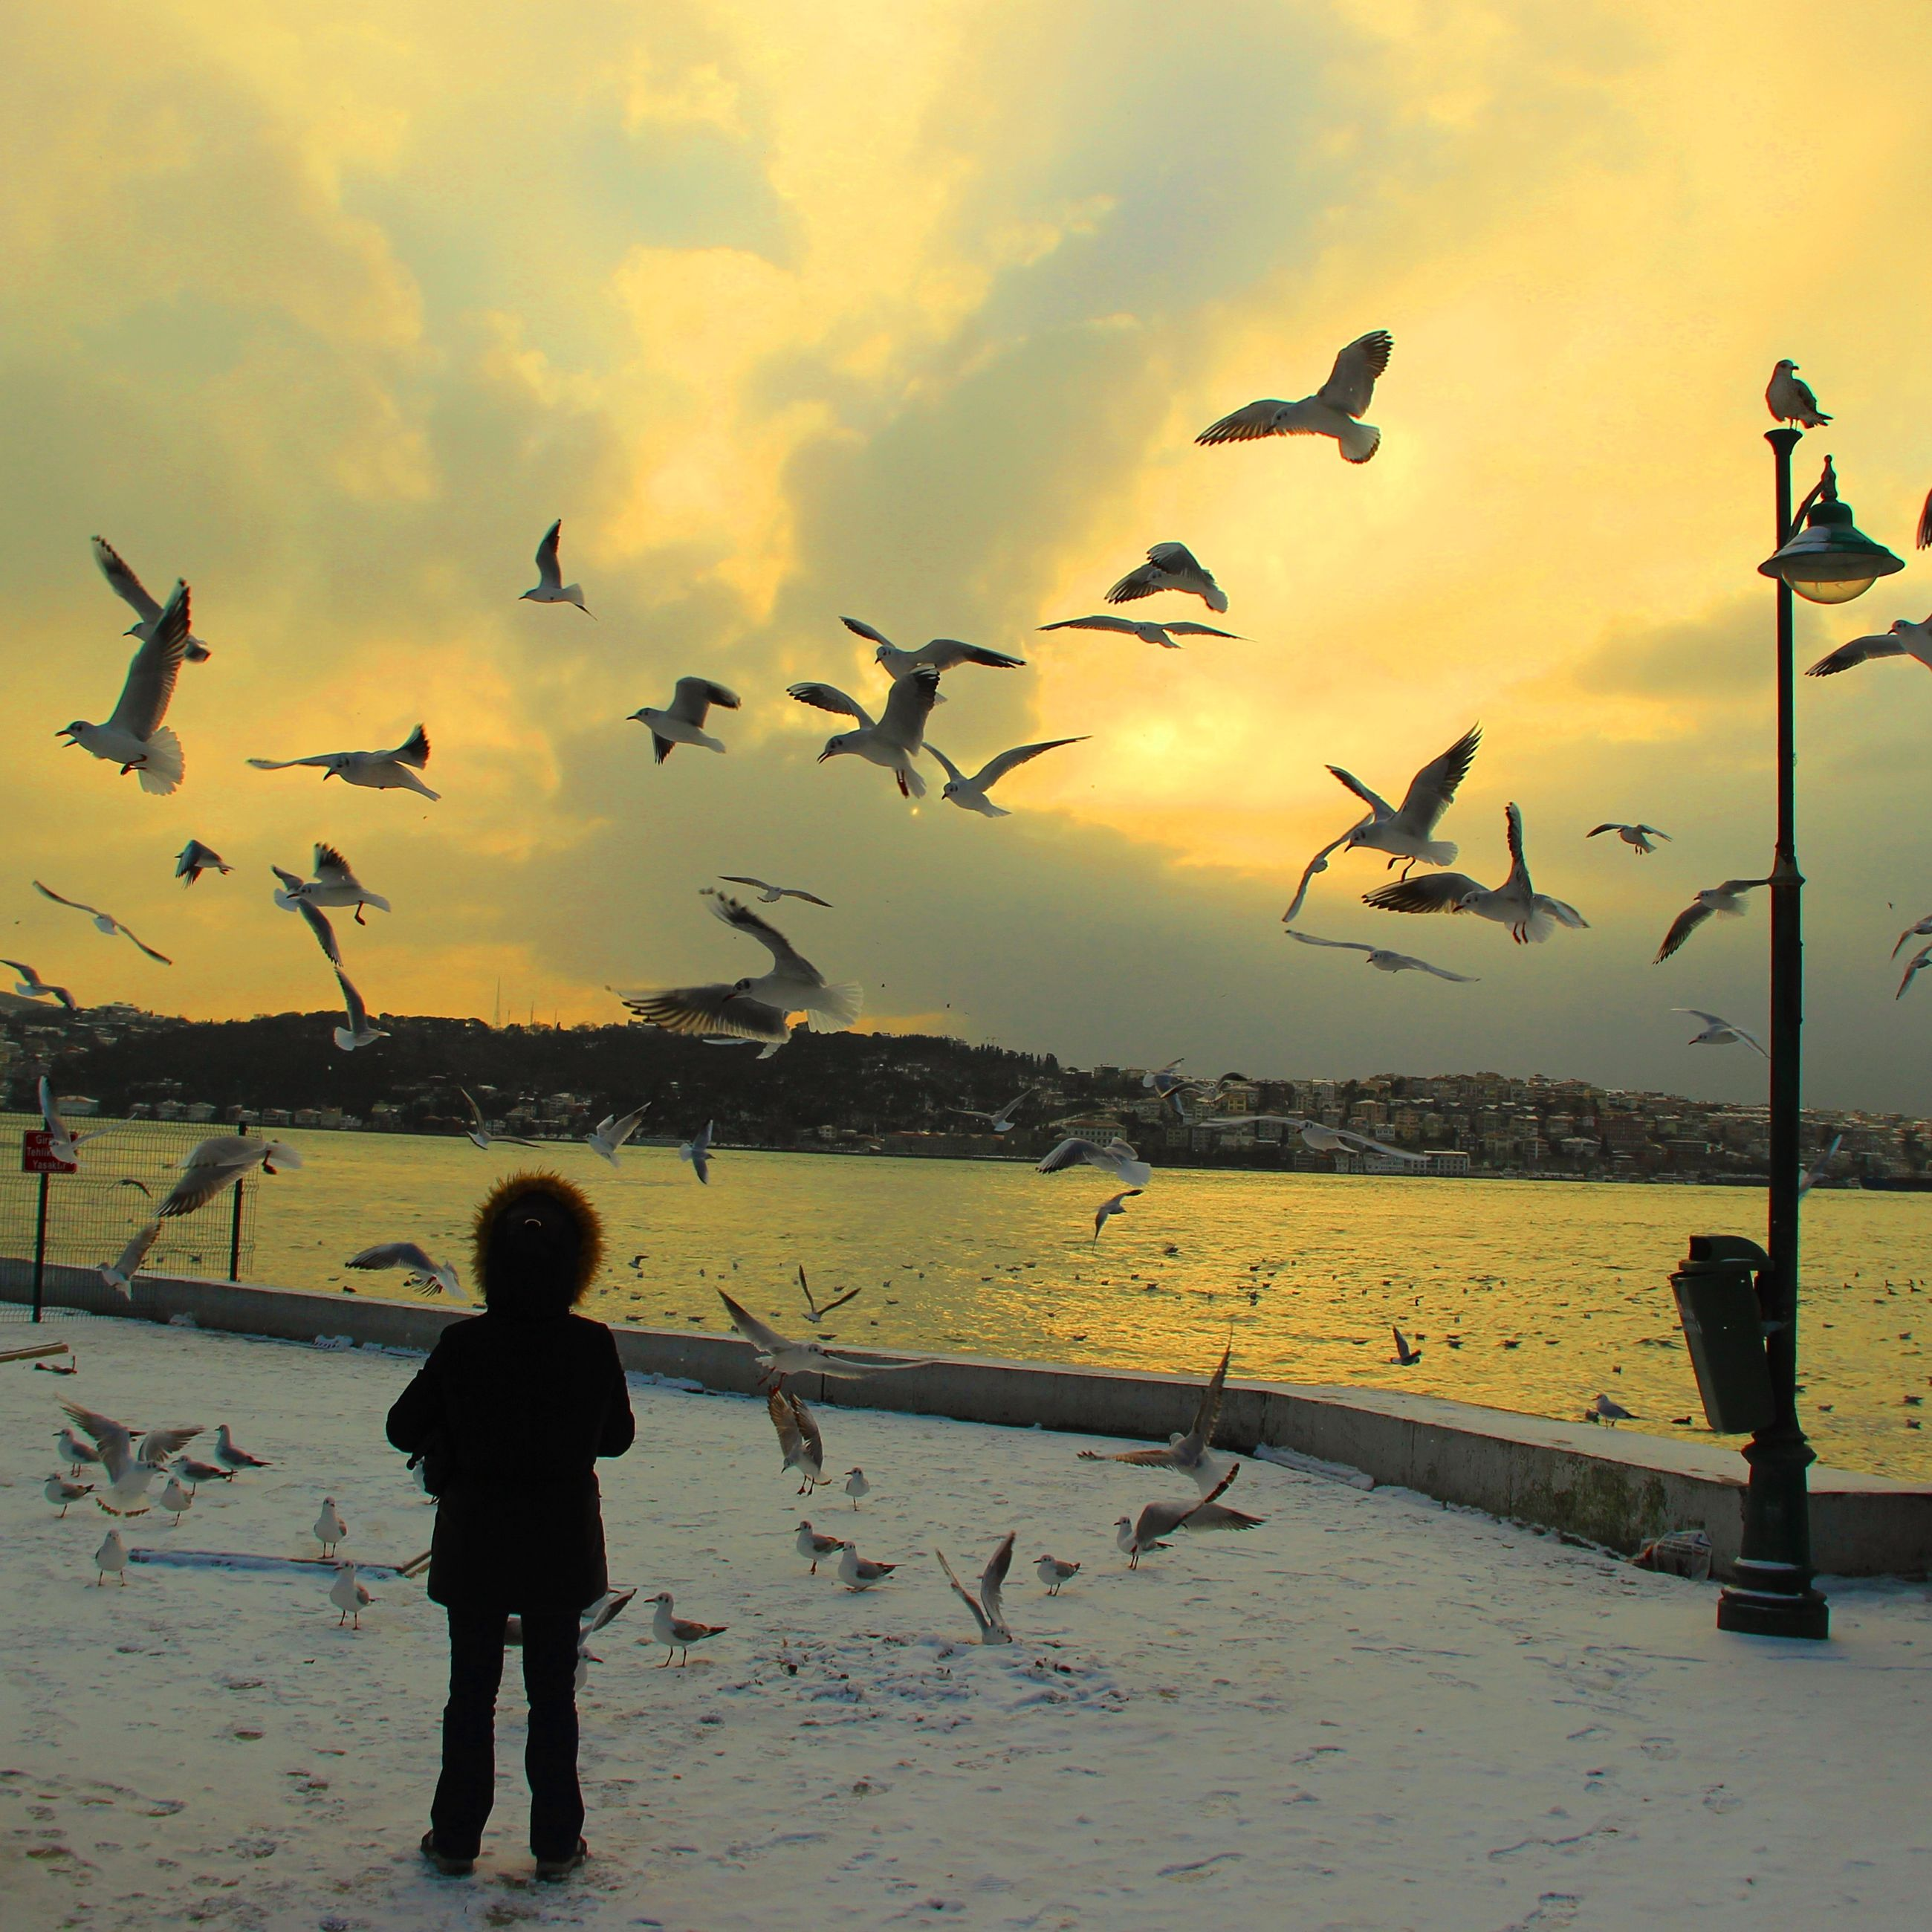 bird, water, animal themes, flying, animals in the wild, sky, wildlife, flock of birds, sunset, sea, cloud - sky, silhouette, pier, seagull, full length, nature, lifestyles, horizon over water